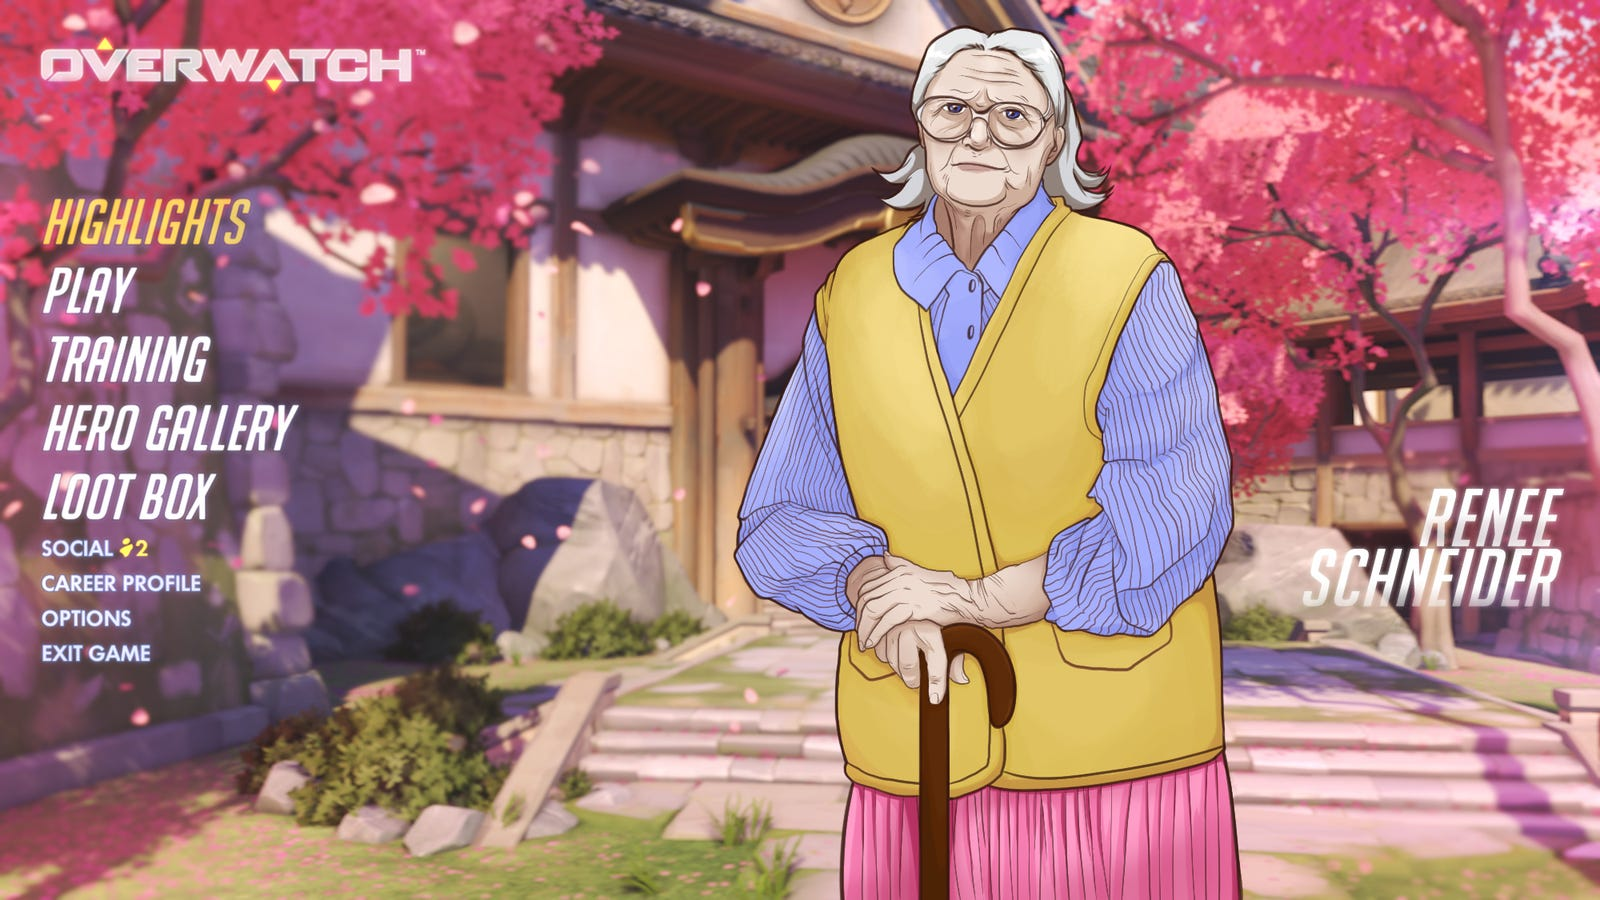 Hardcore Gamers Only: 'Overwatch' Is Increasing Its Difficulty By Adding A Senior-Citizen Character That's A Financial Drain And Emotional Burden On Their Whole Team